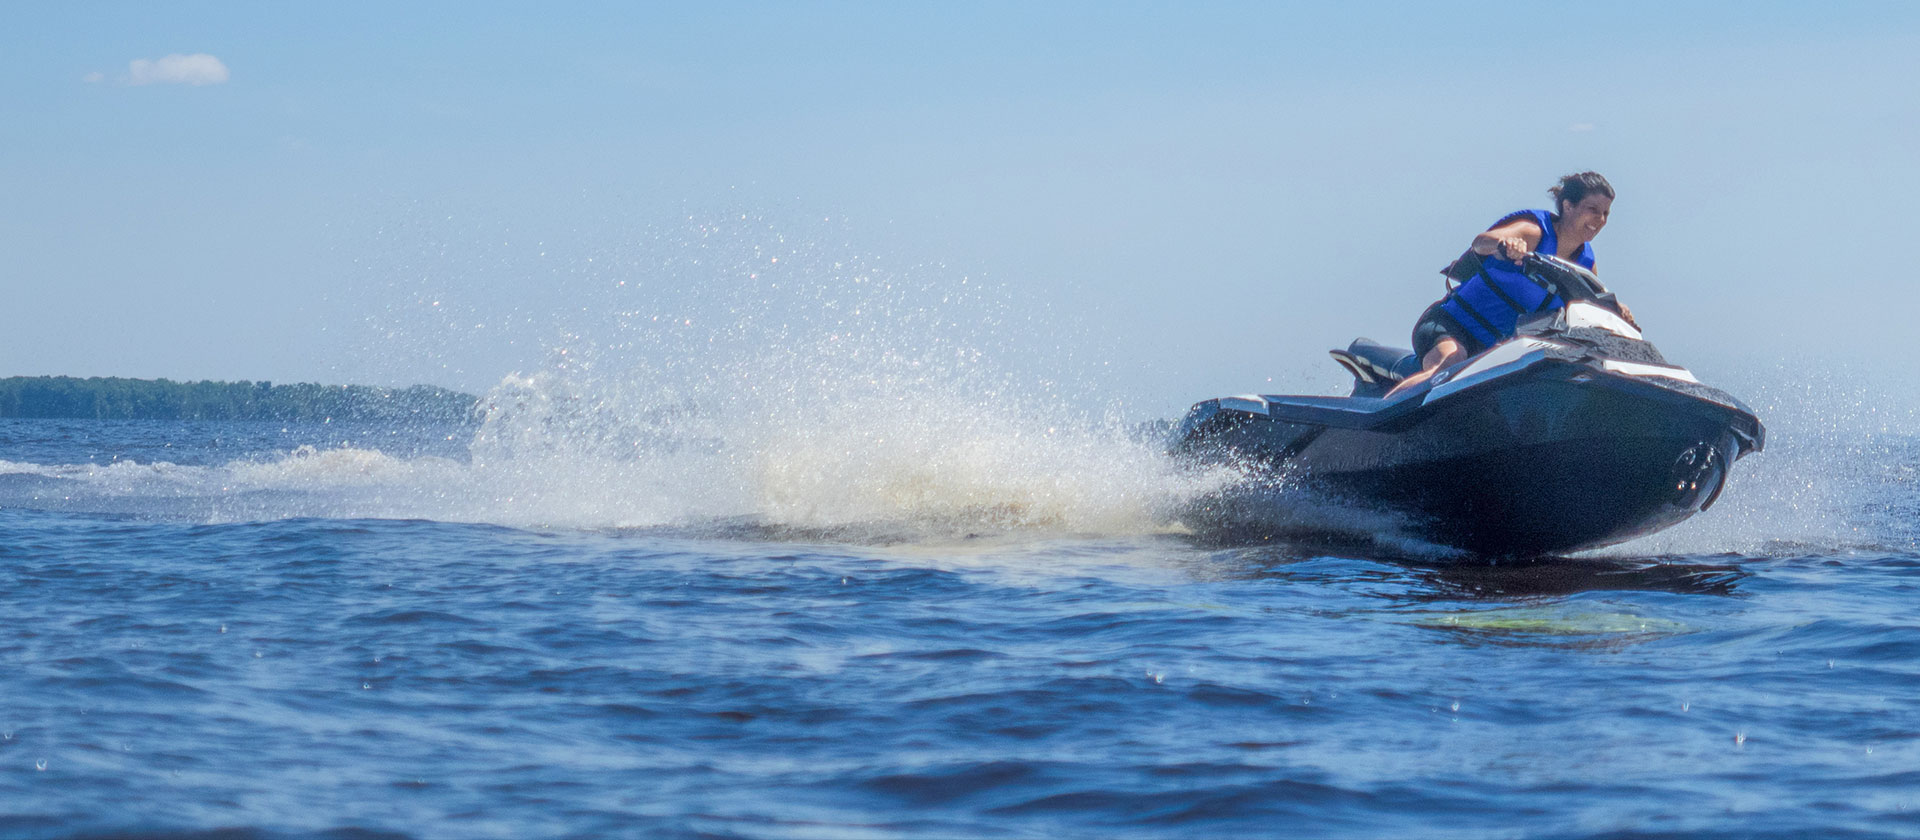 Guided & Unguided Jet Ski Rentals in Panama City Beach ...